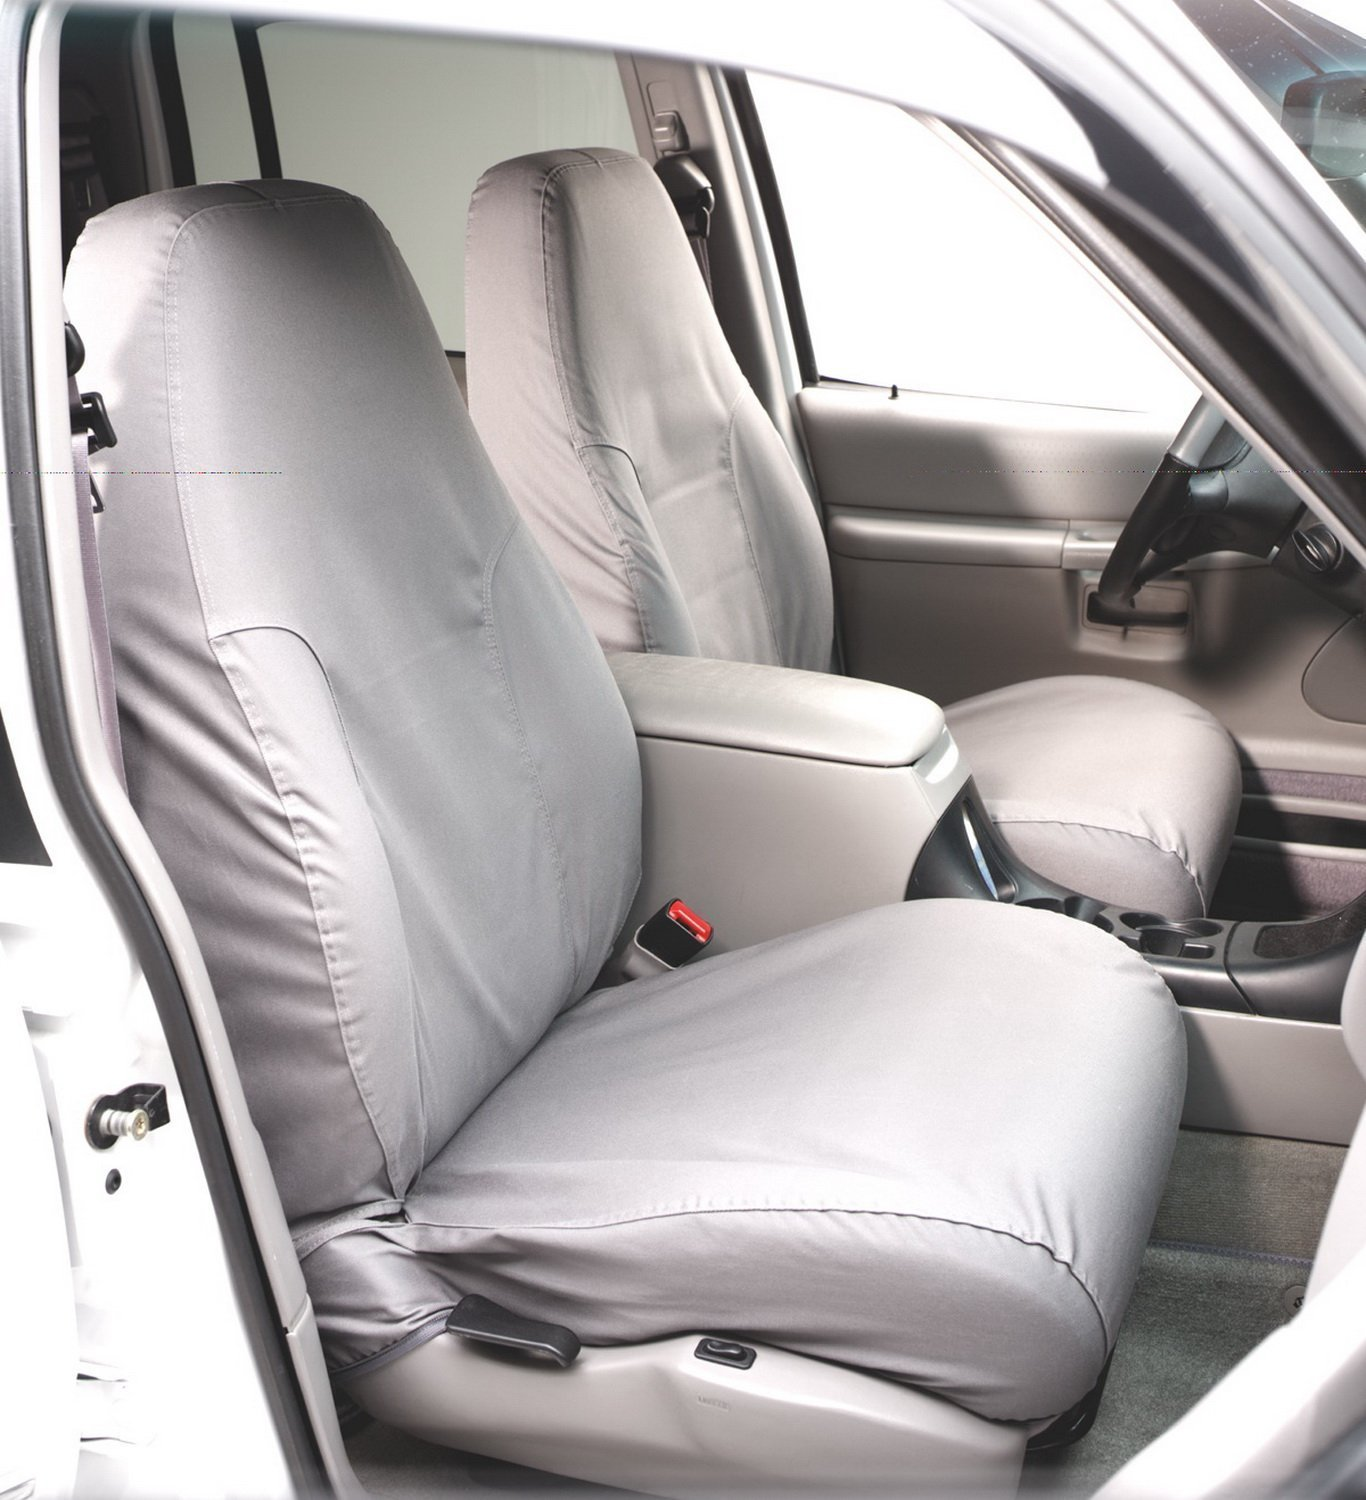 Covercraft SeatSaver Front Row Custom Fit Seat Cover for Select Chevrolet Express/GMC Savana Models - Polycotton (Grey)